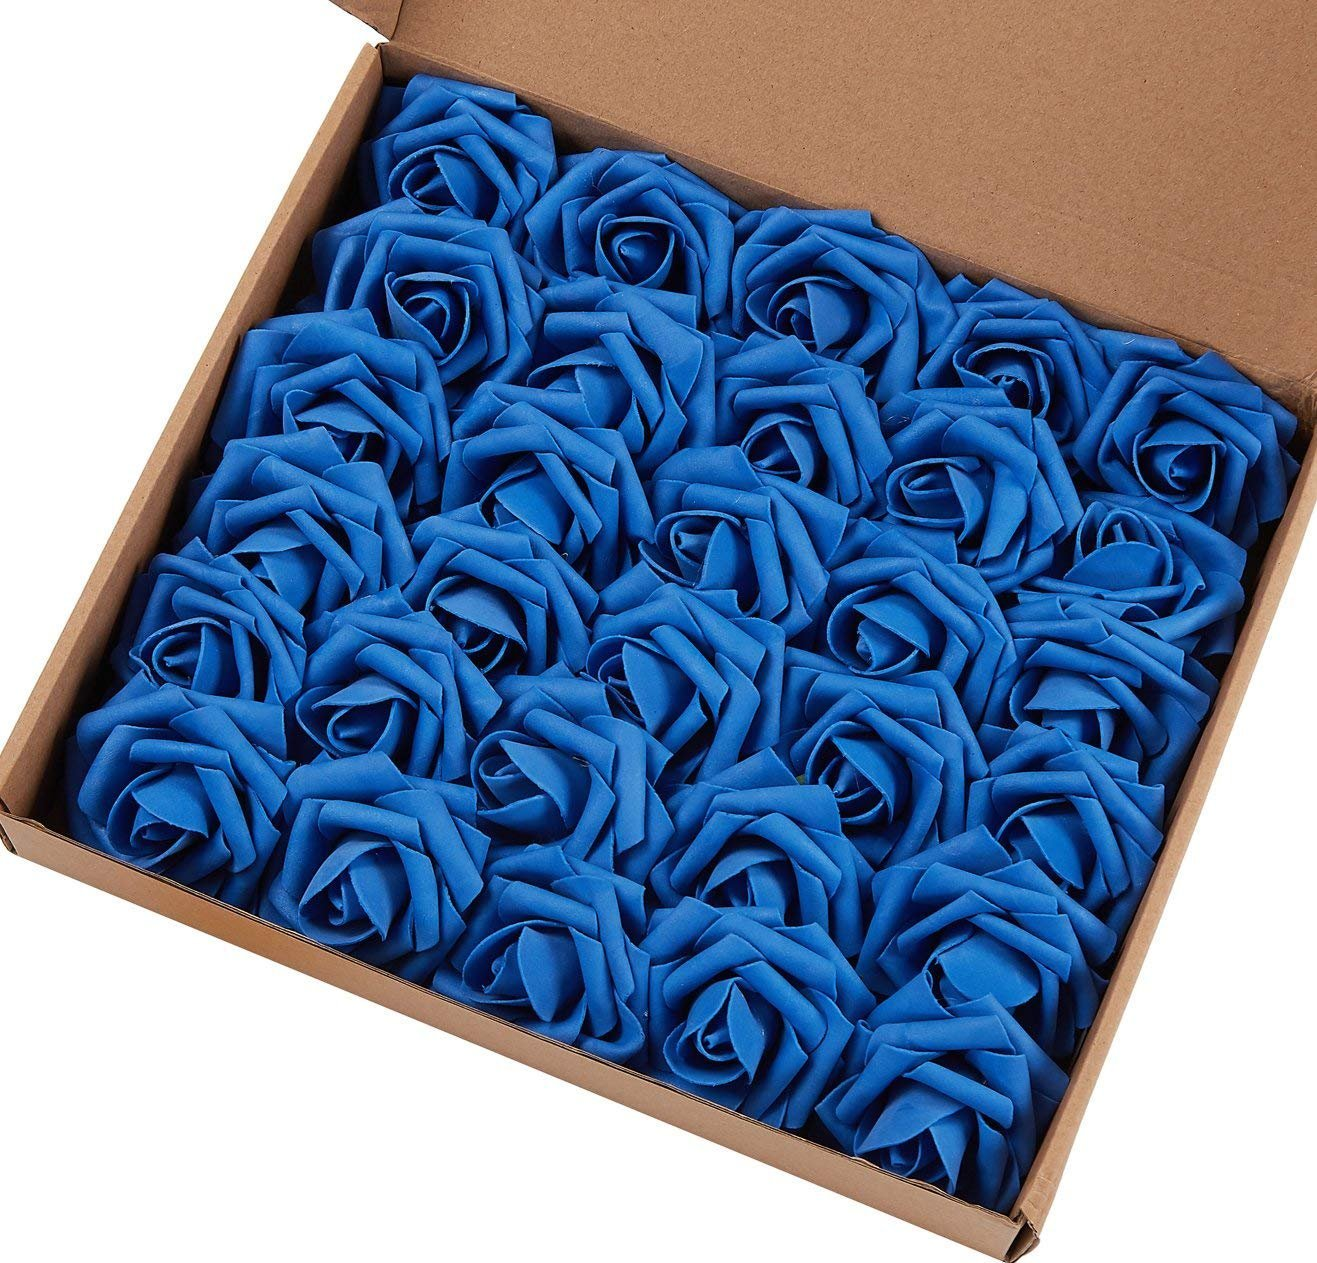 Marry Acting Artificial Flower Rose, Real Touch Artificial Roses for DIY Bouquets Wedding Party Baby Shower Home Decor (60pcs Royal Blue)